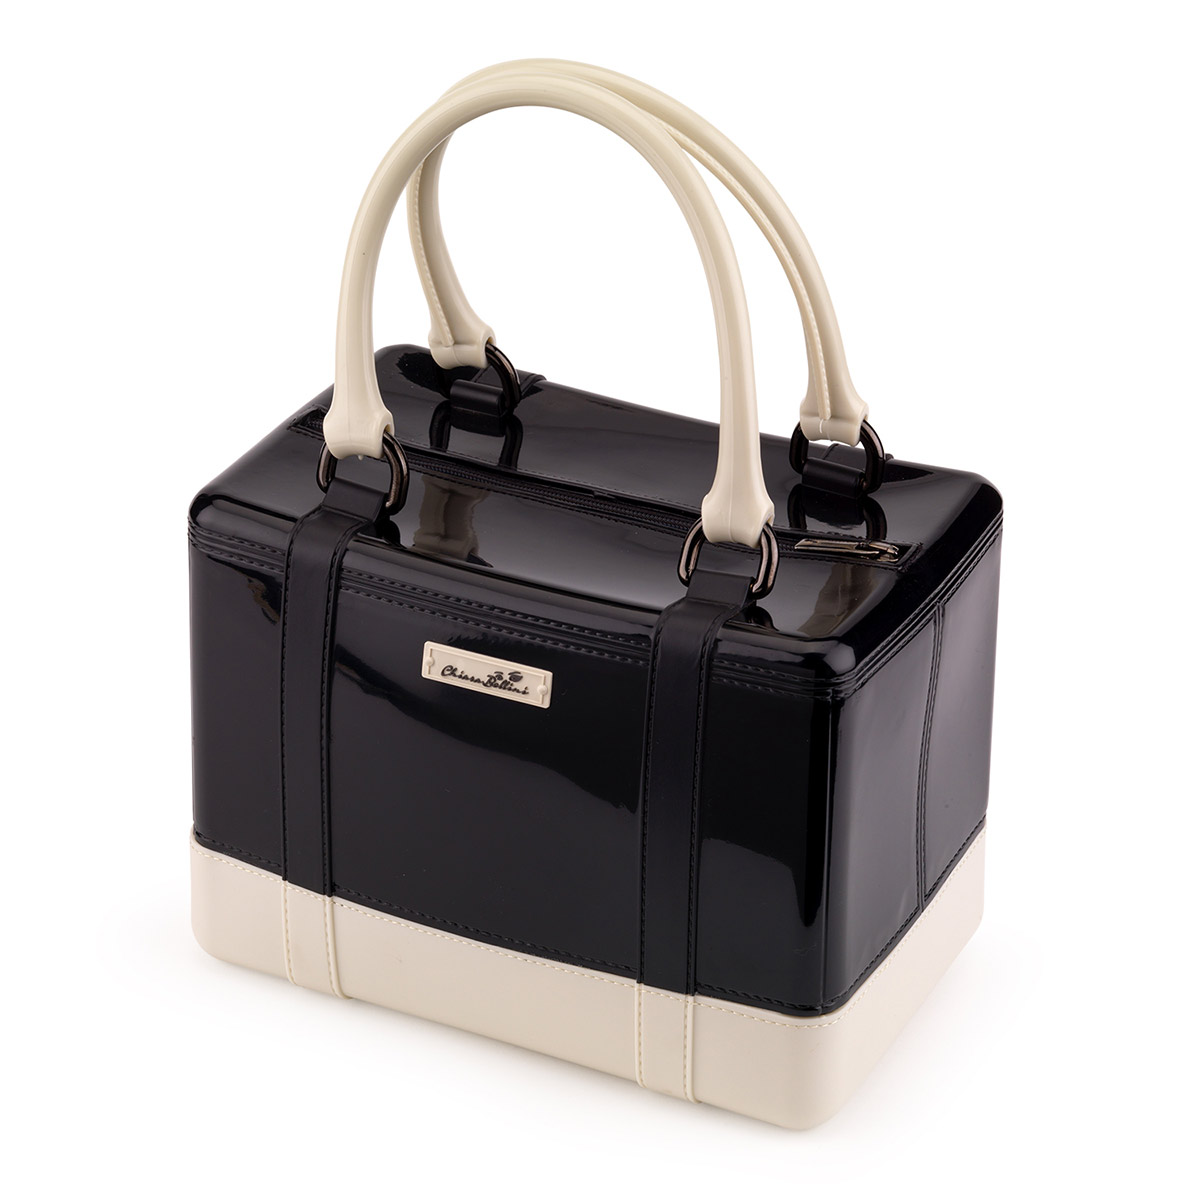 Double colour PVC Satchel handbag